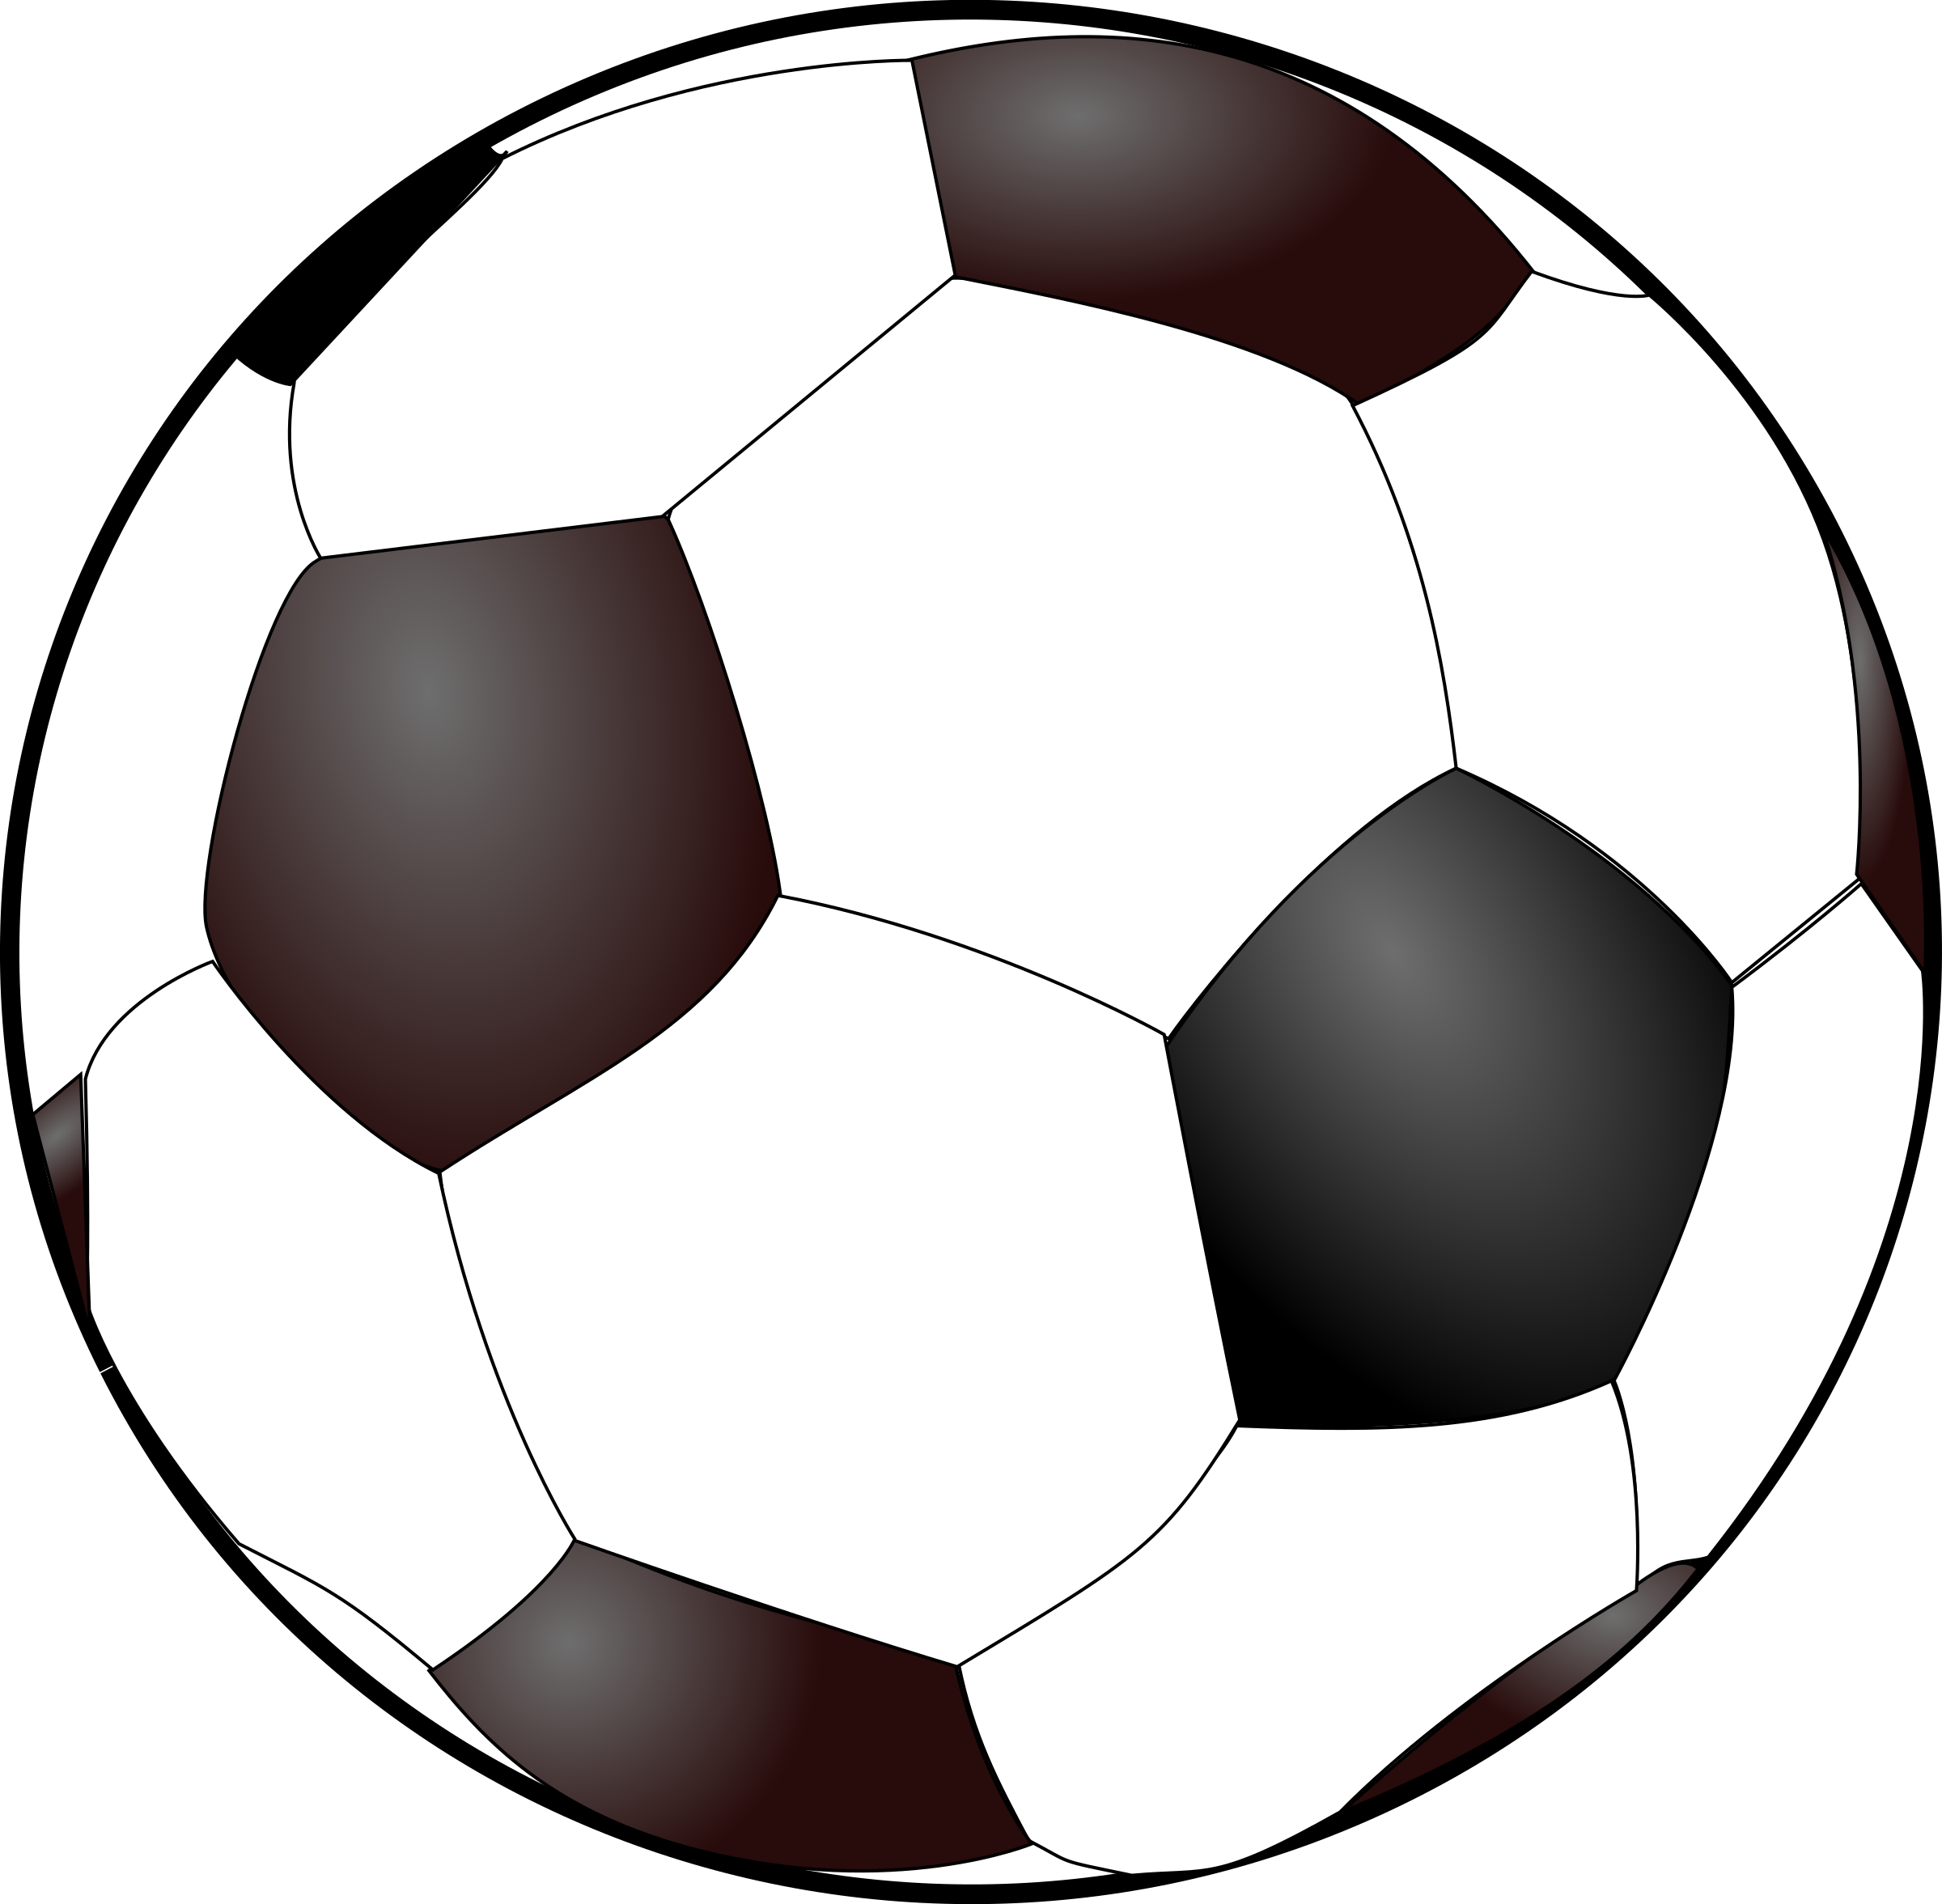 Clipart of a soccer ball clip transparent download Clipart - Soccer Ball clip transparent download